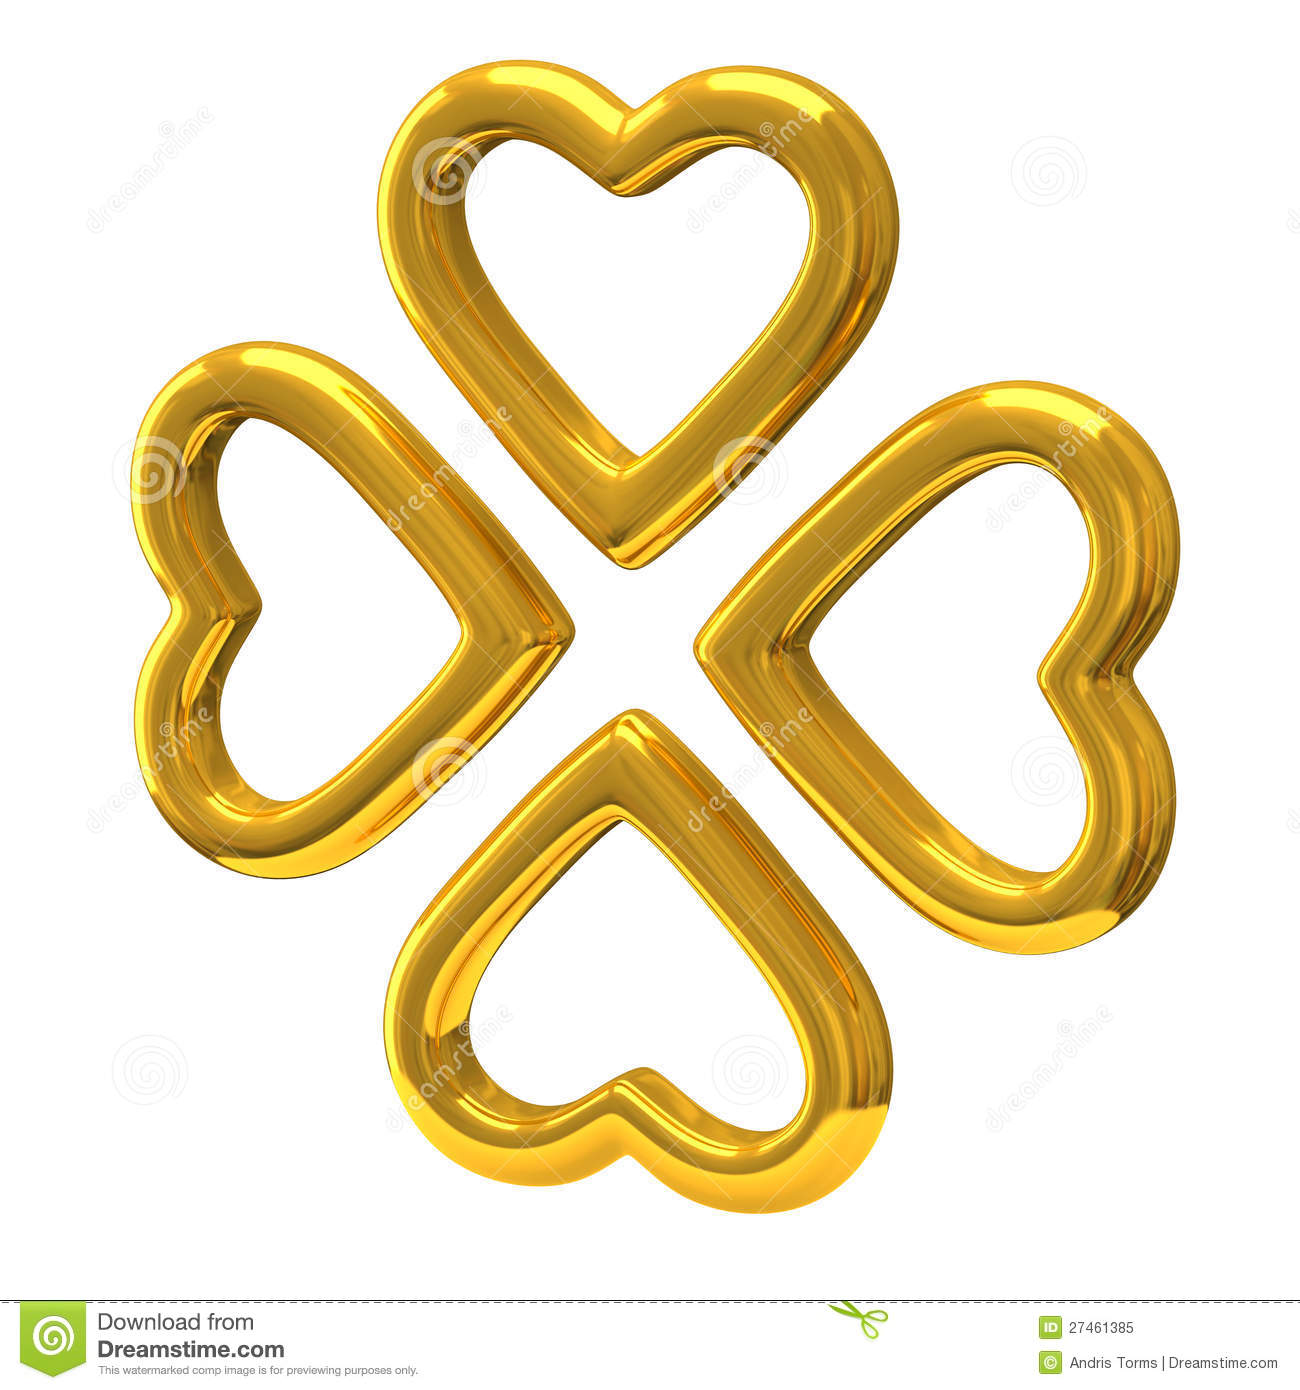 Royalty Free Stock Photo Four Golden Hearts As Four Leaf Clover 3d Image27461385 on Wedding Ring Clip Art Transparent